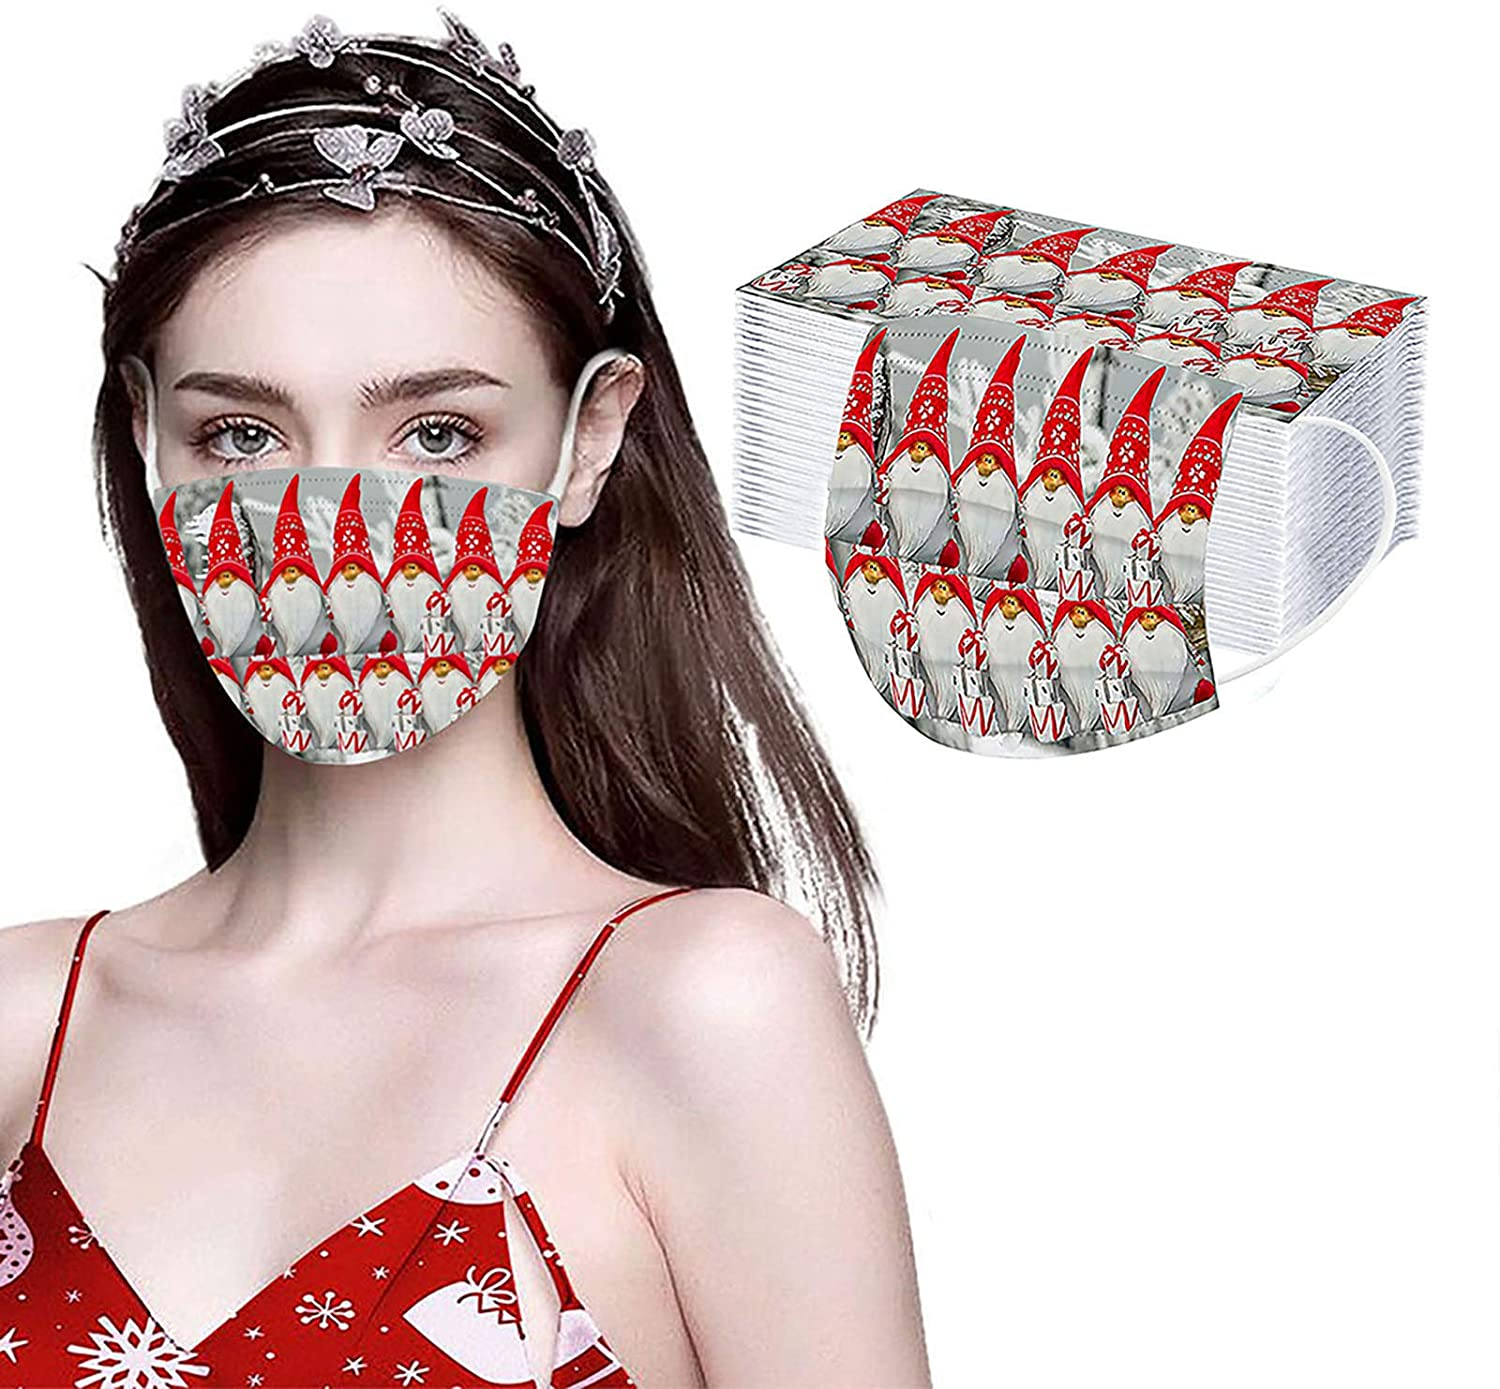 Christmas Face_Mask Print Patterns Cute Adult Disposable,3Ply Nonwoven Protective Face Covering Fashion Balaclava Women